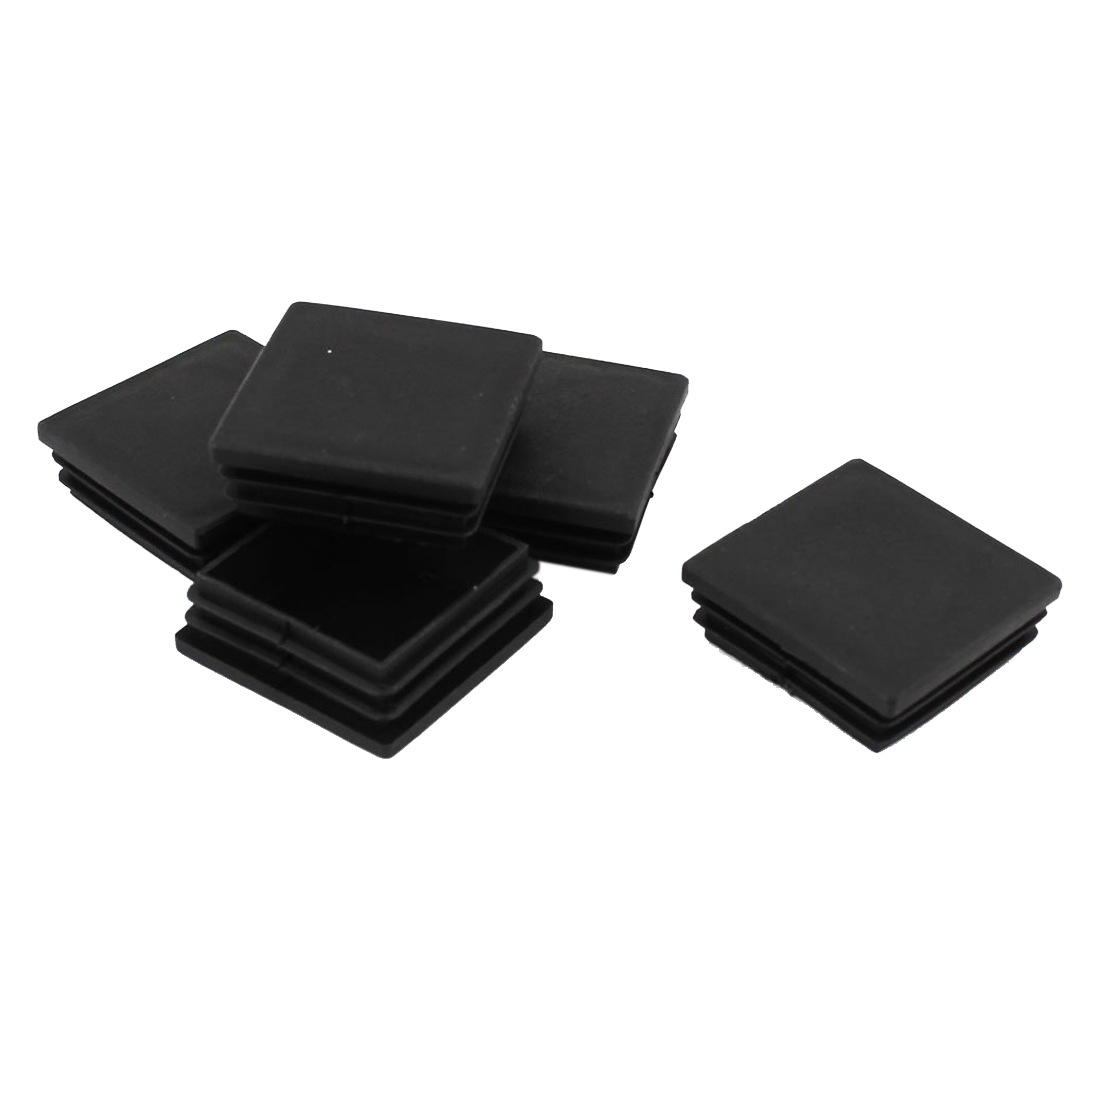 Hot Sale Plastic Square Tubing Inserts End Blanking Cover